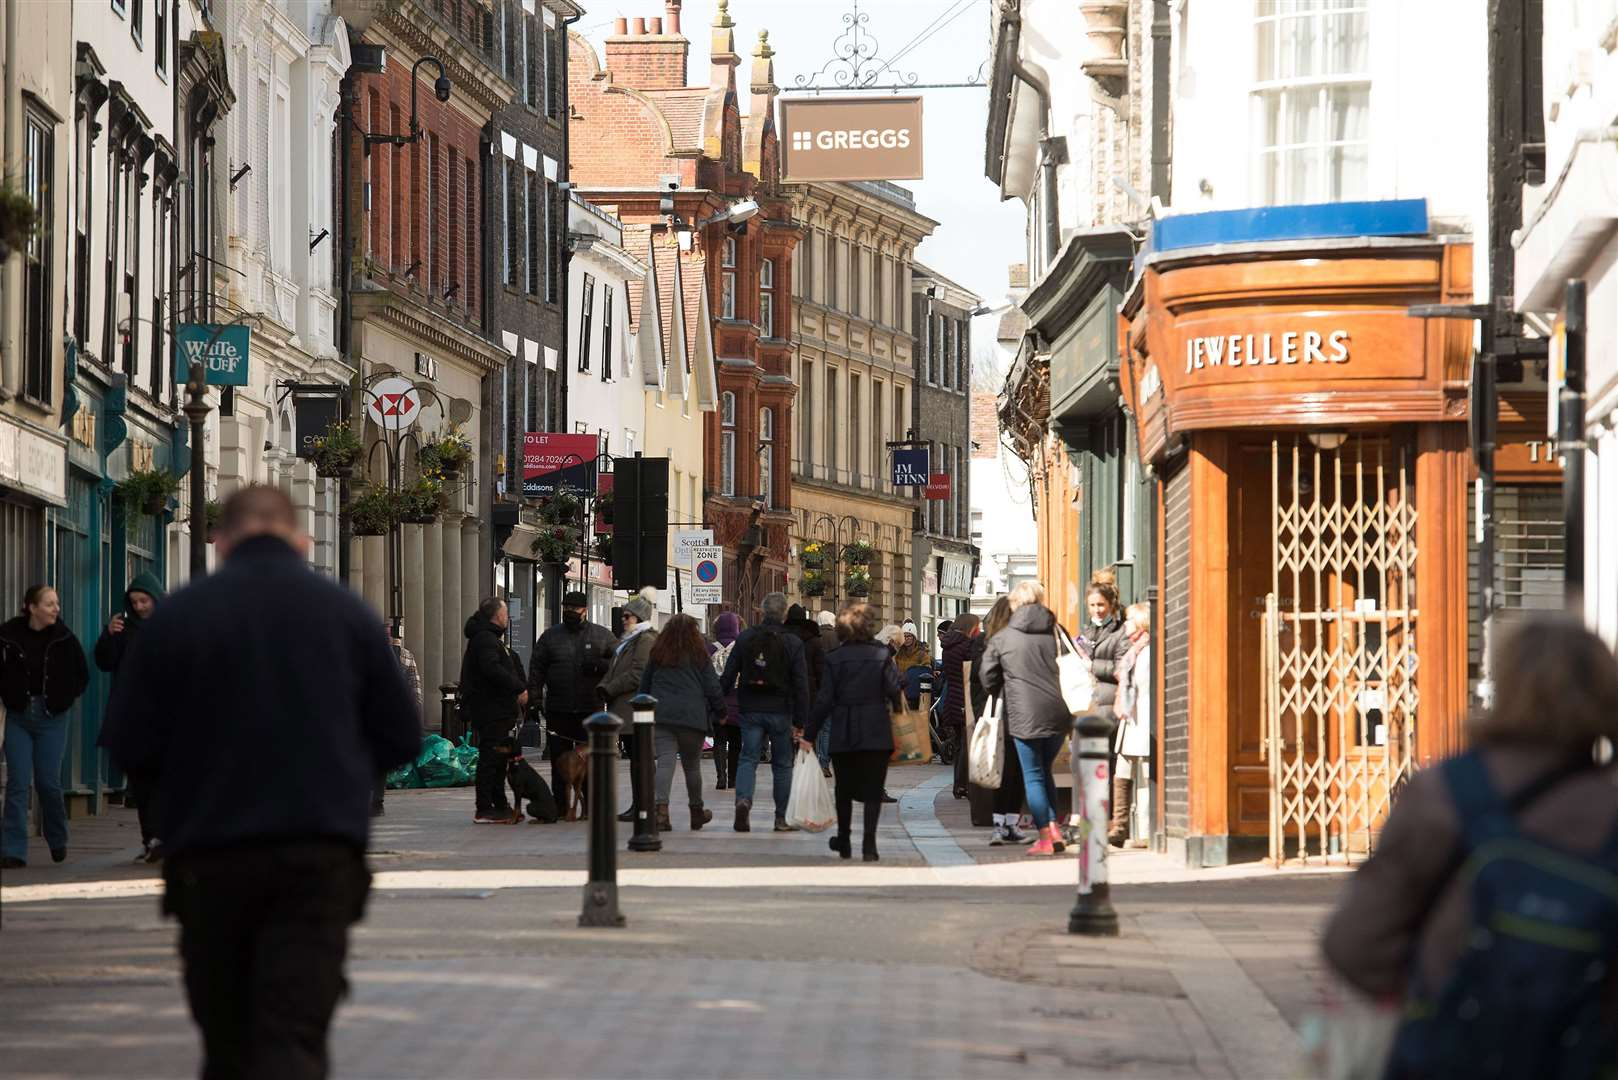 The traffic closure in Abbeygate Street will be extended from its current hours of 10am to 4pm, to 8am to 6pm to help hospitality businesses. Picture: Mark Westley